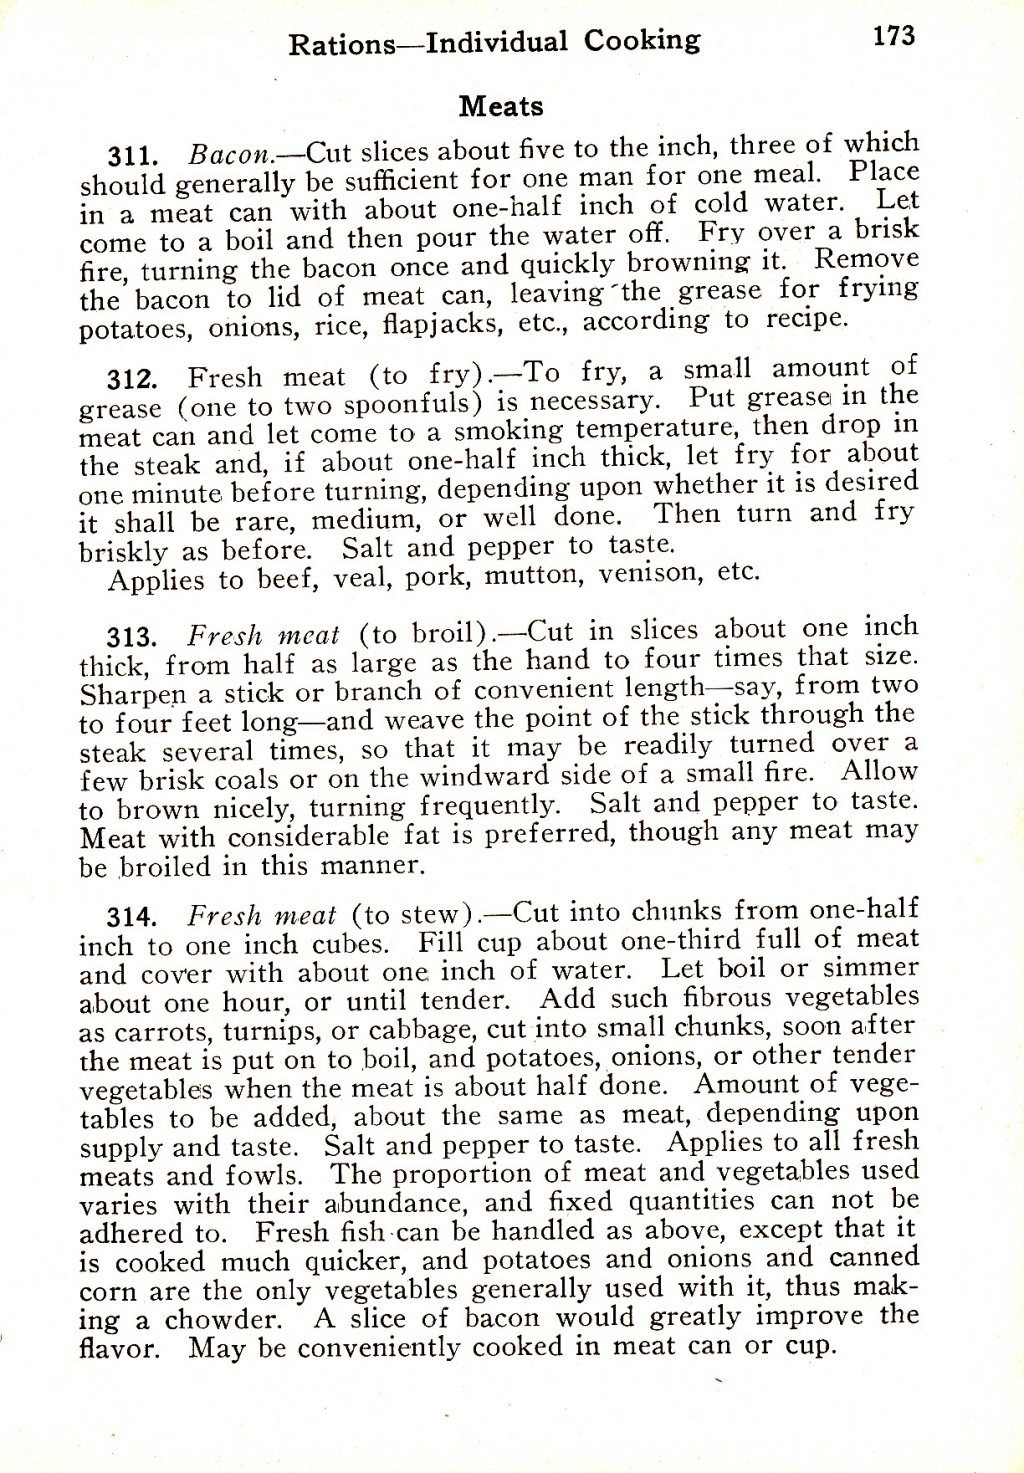 314th Infantry Regiment - Infantry Soldiers Handbook - Waldron - Page 173